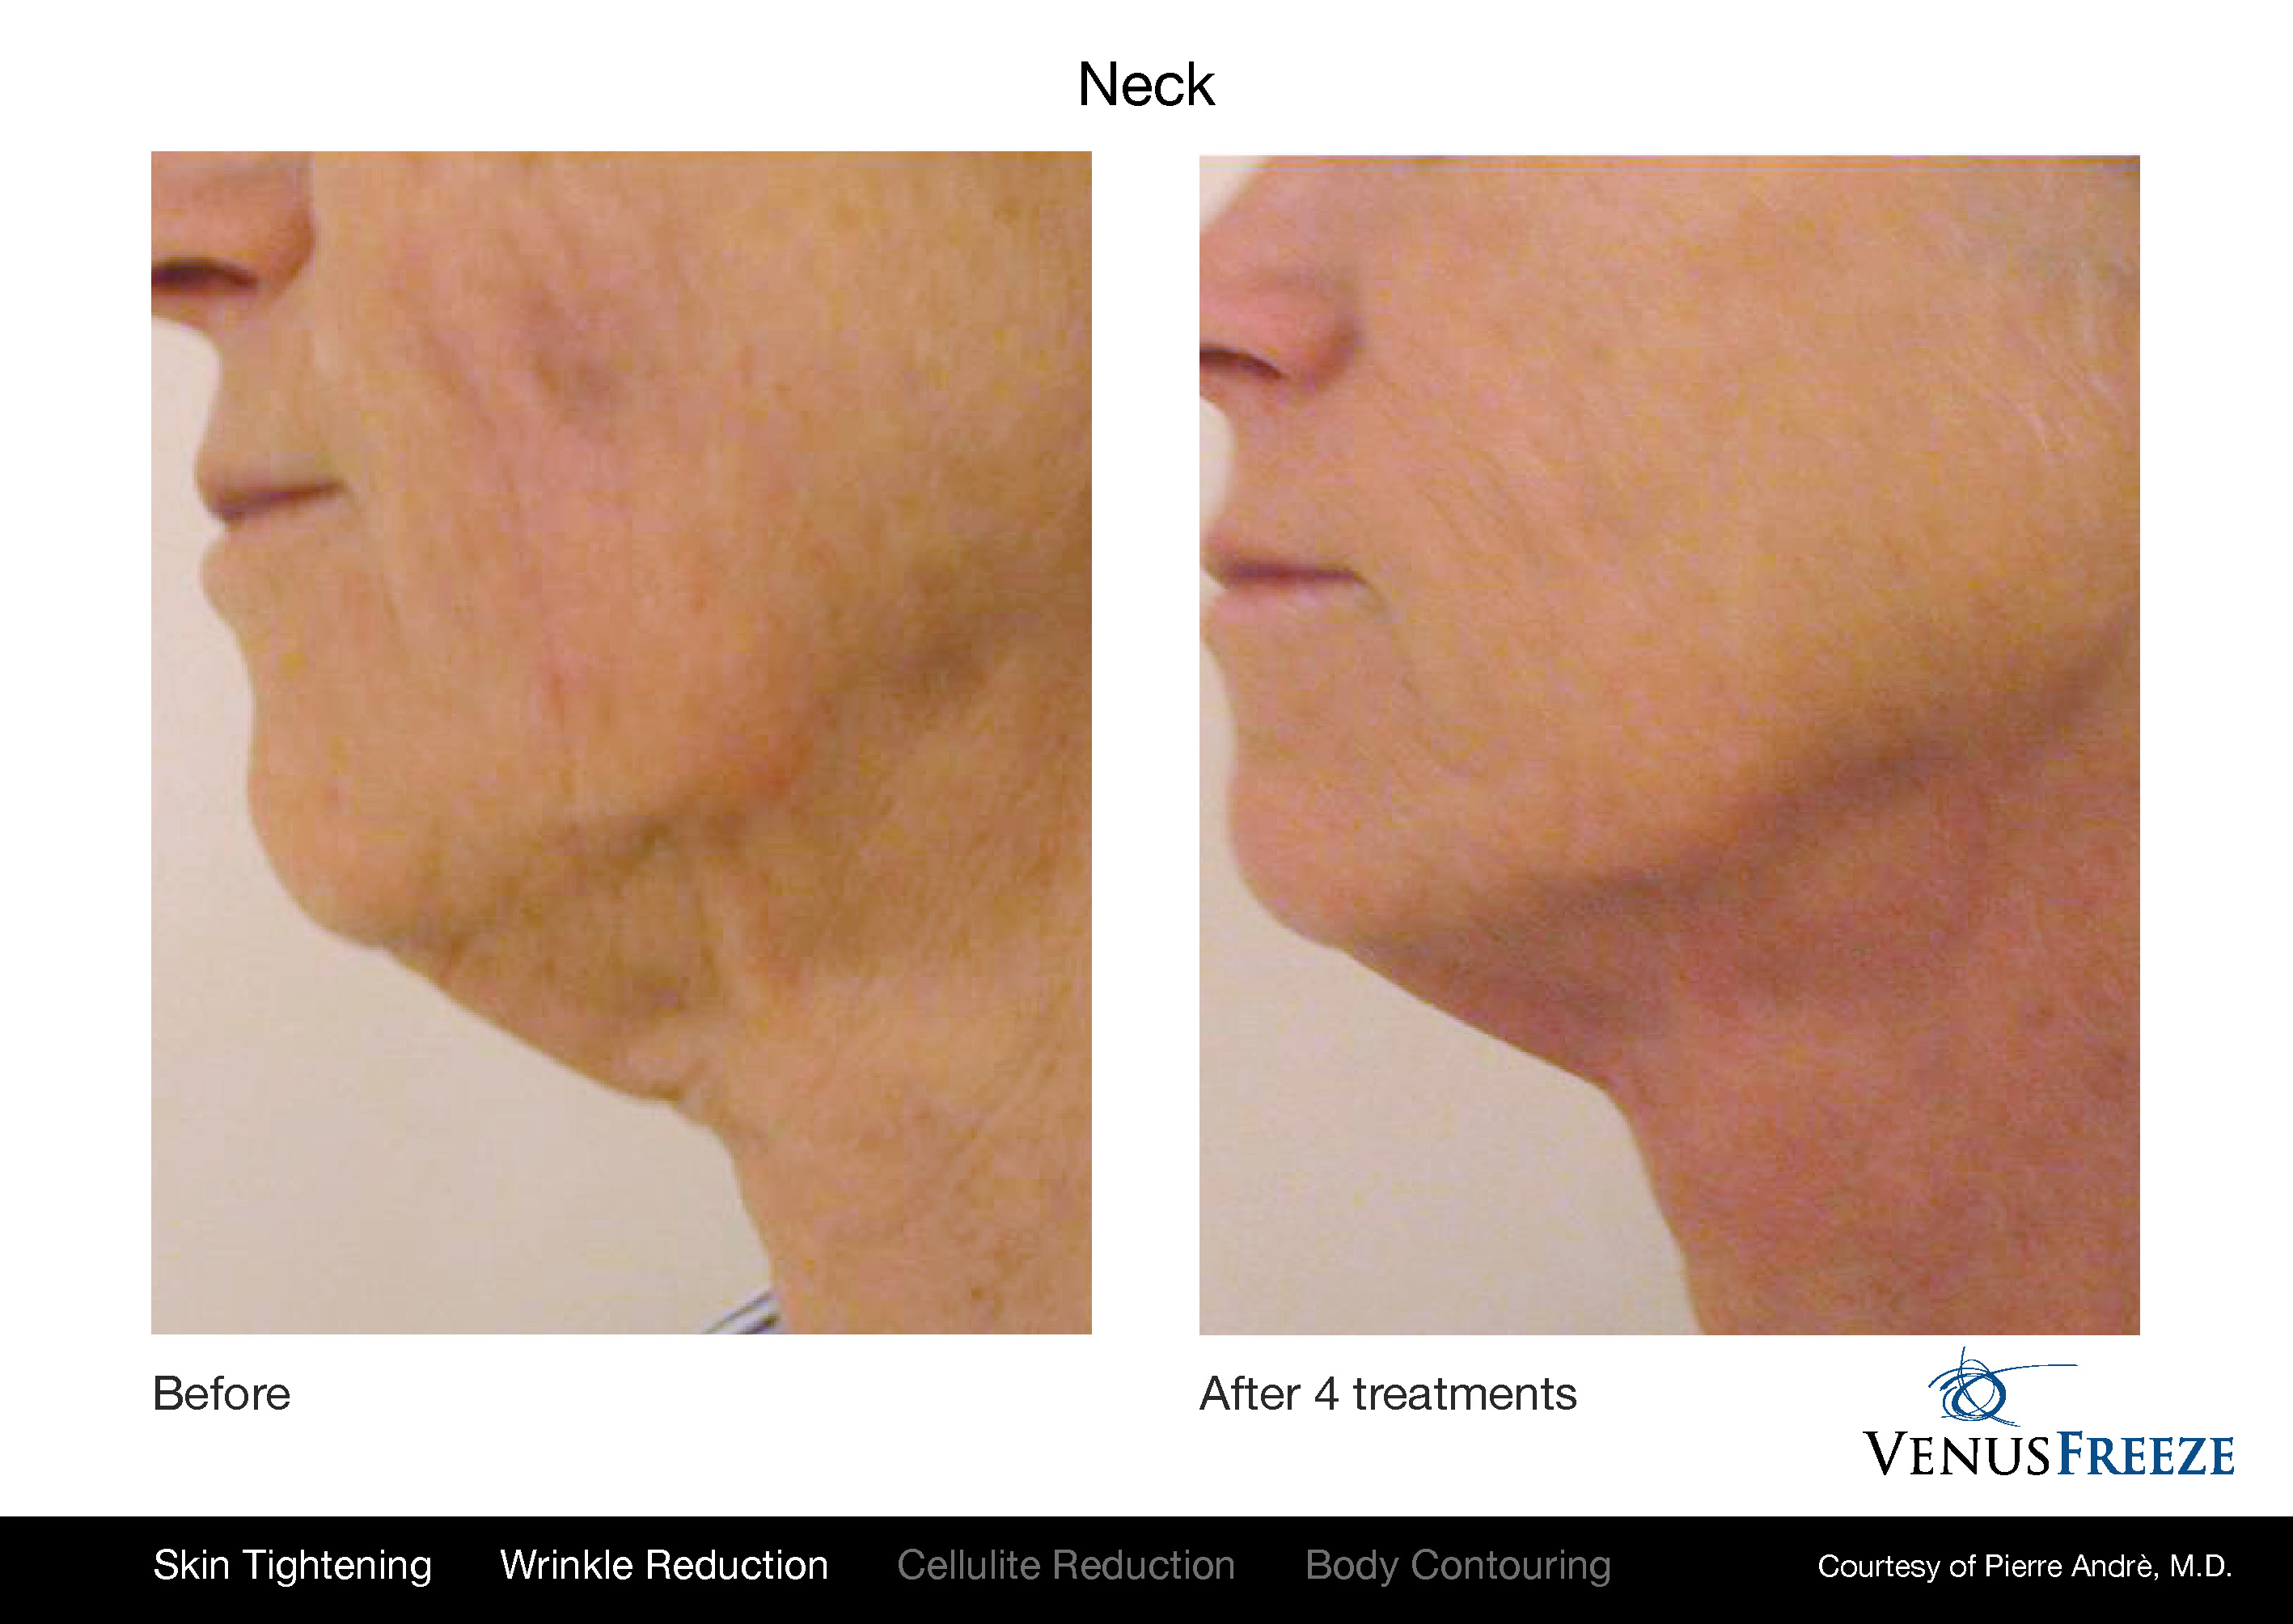 Body Contouring Austin | Venus Freeze Neck Before & After | Wrinkle Reduction & Skin Tightening